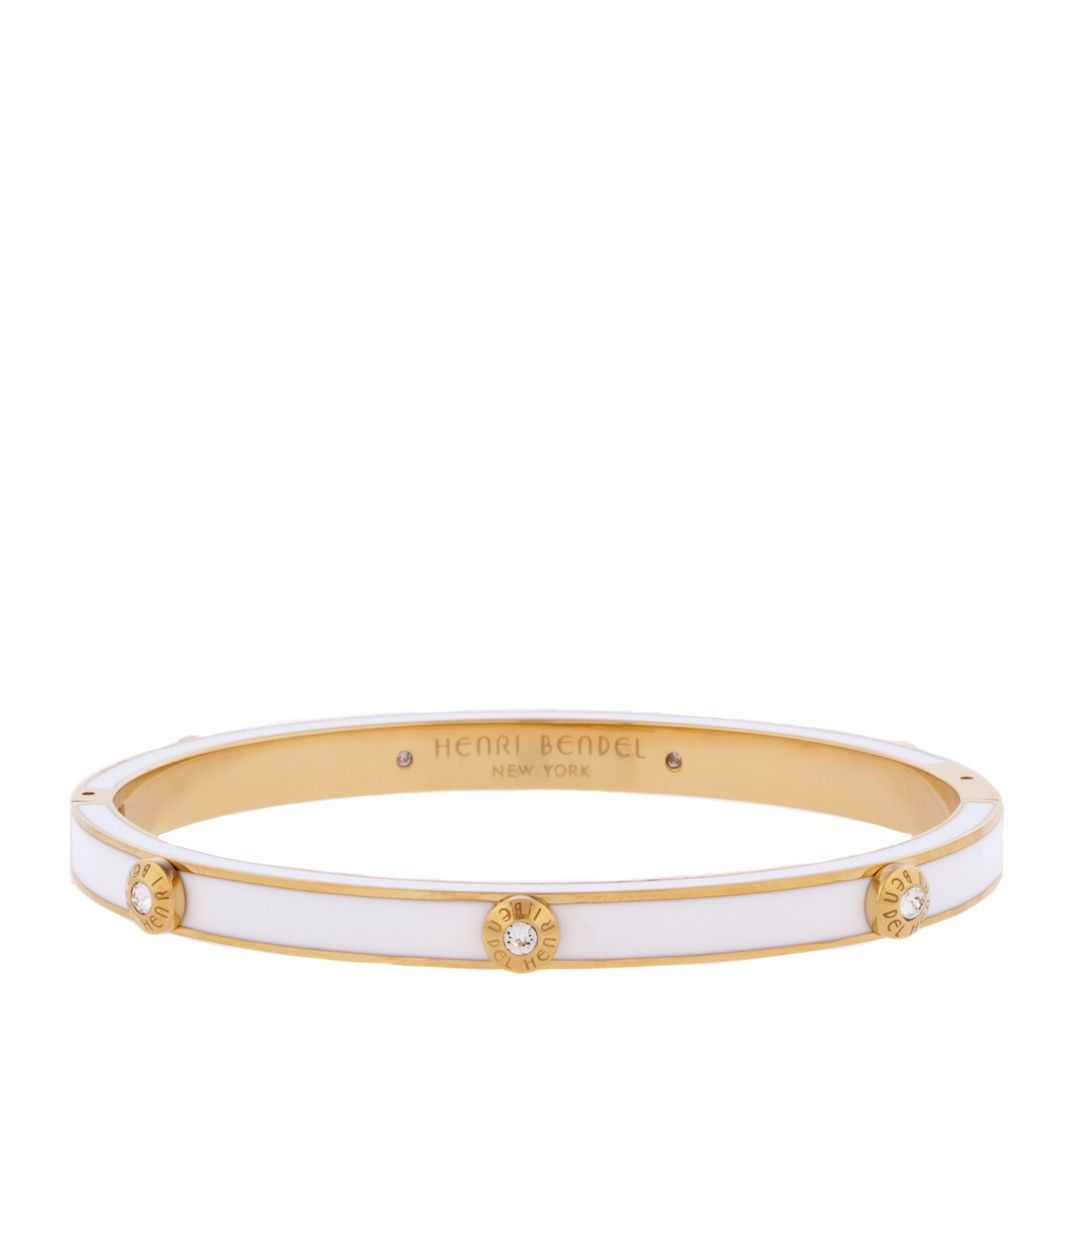 Miss bendel rivet bangle bracelet page henri bendel classic